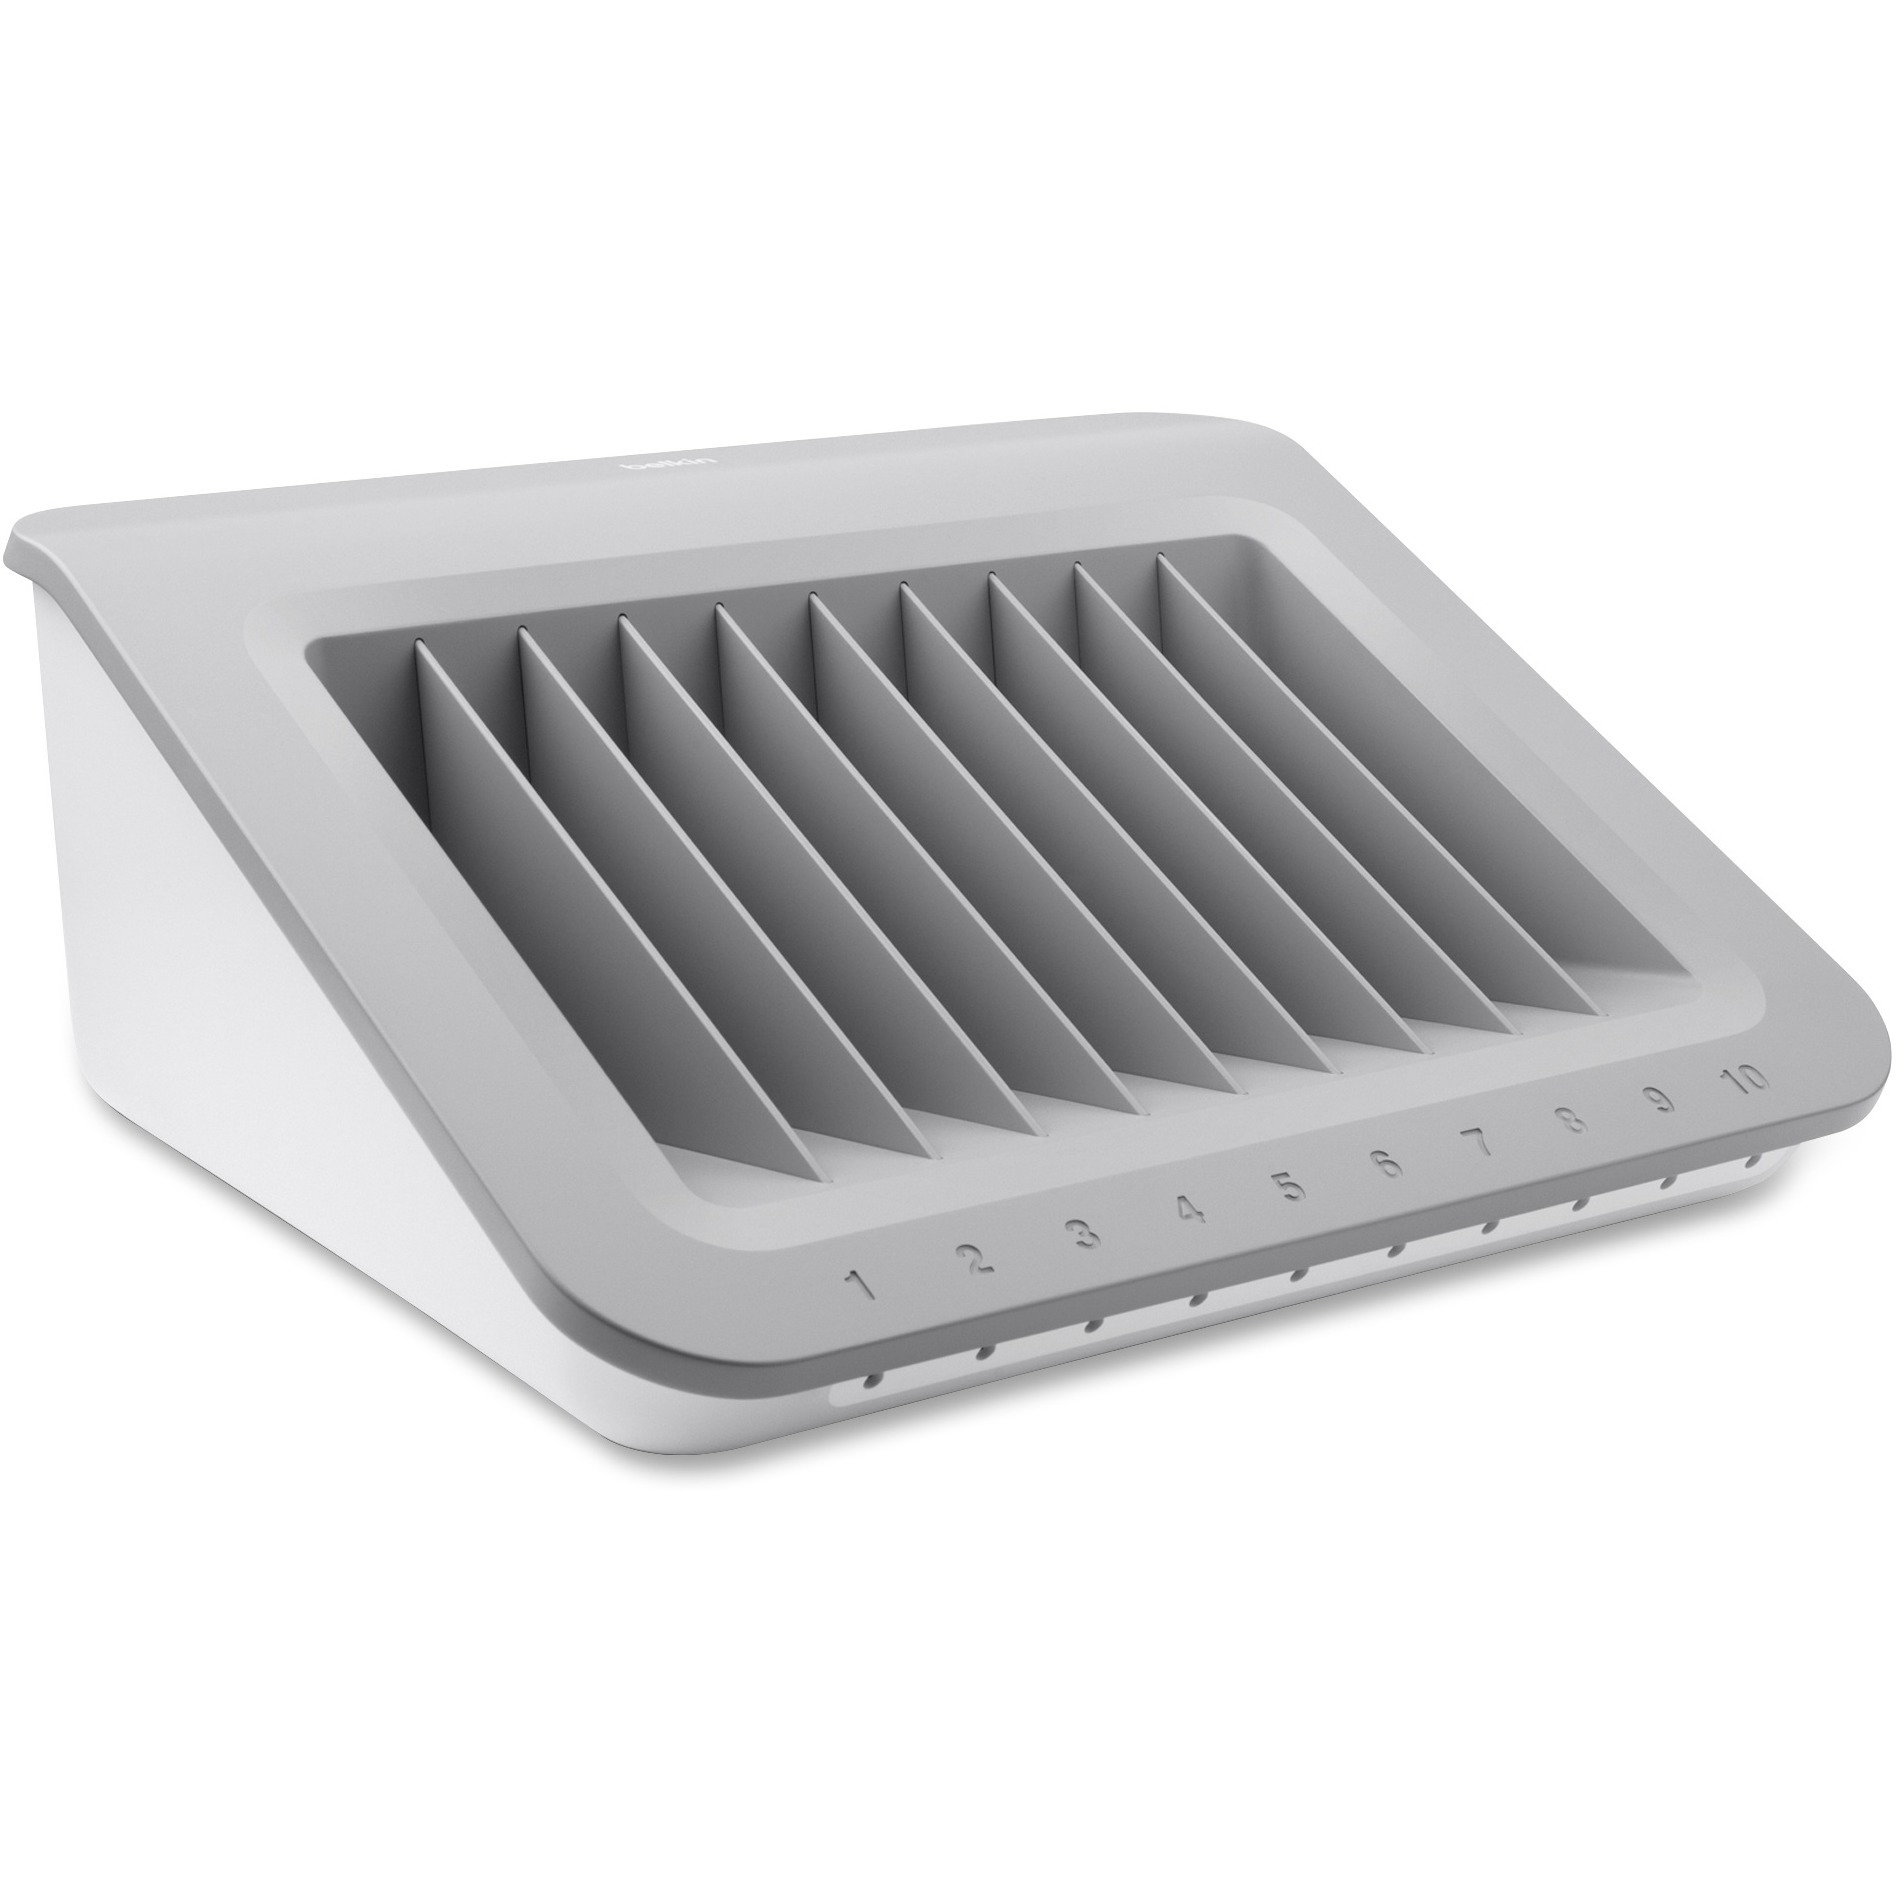 Belkin, BLKB2B074, Store-and-Charge Station, 1, Gray,White